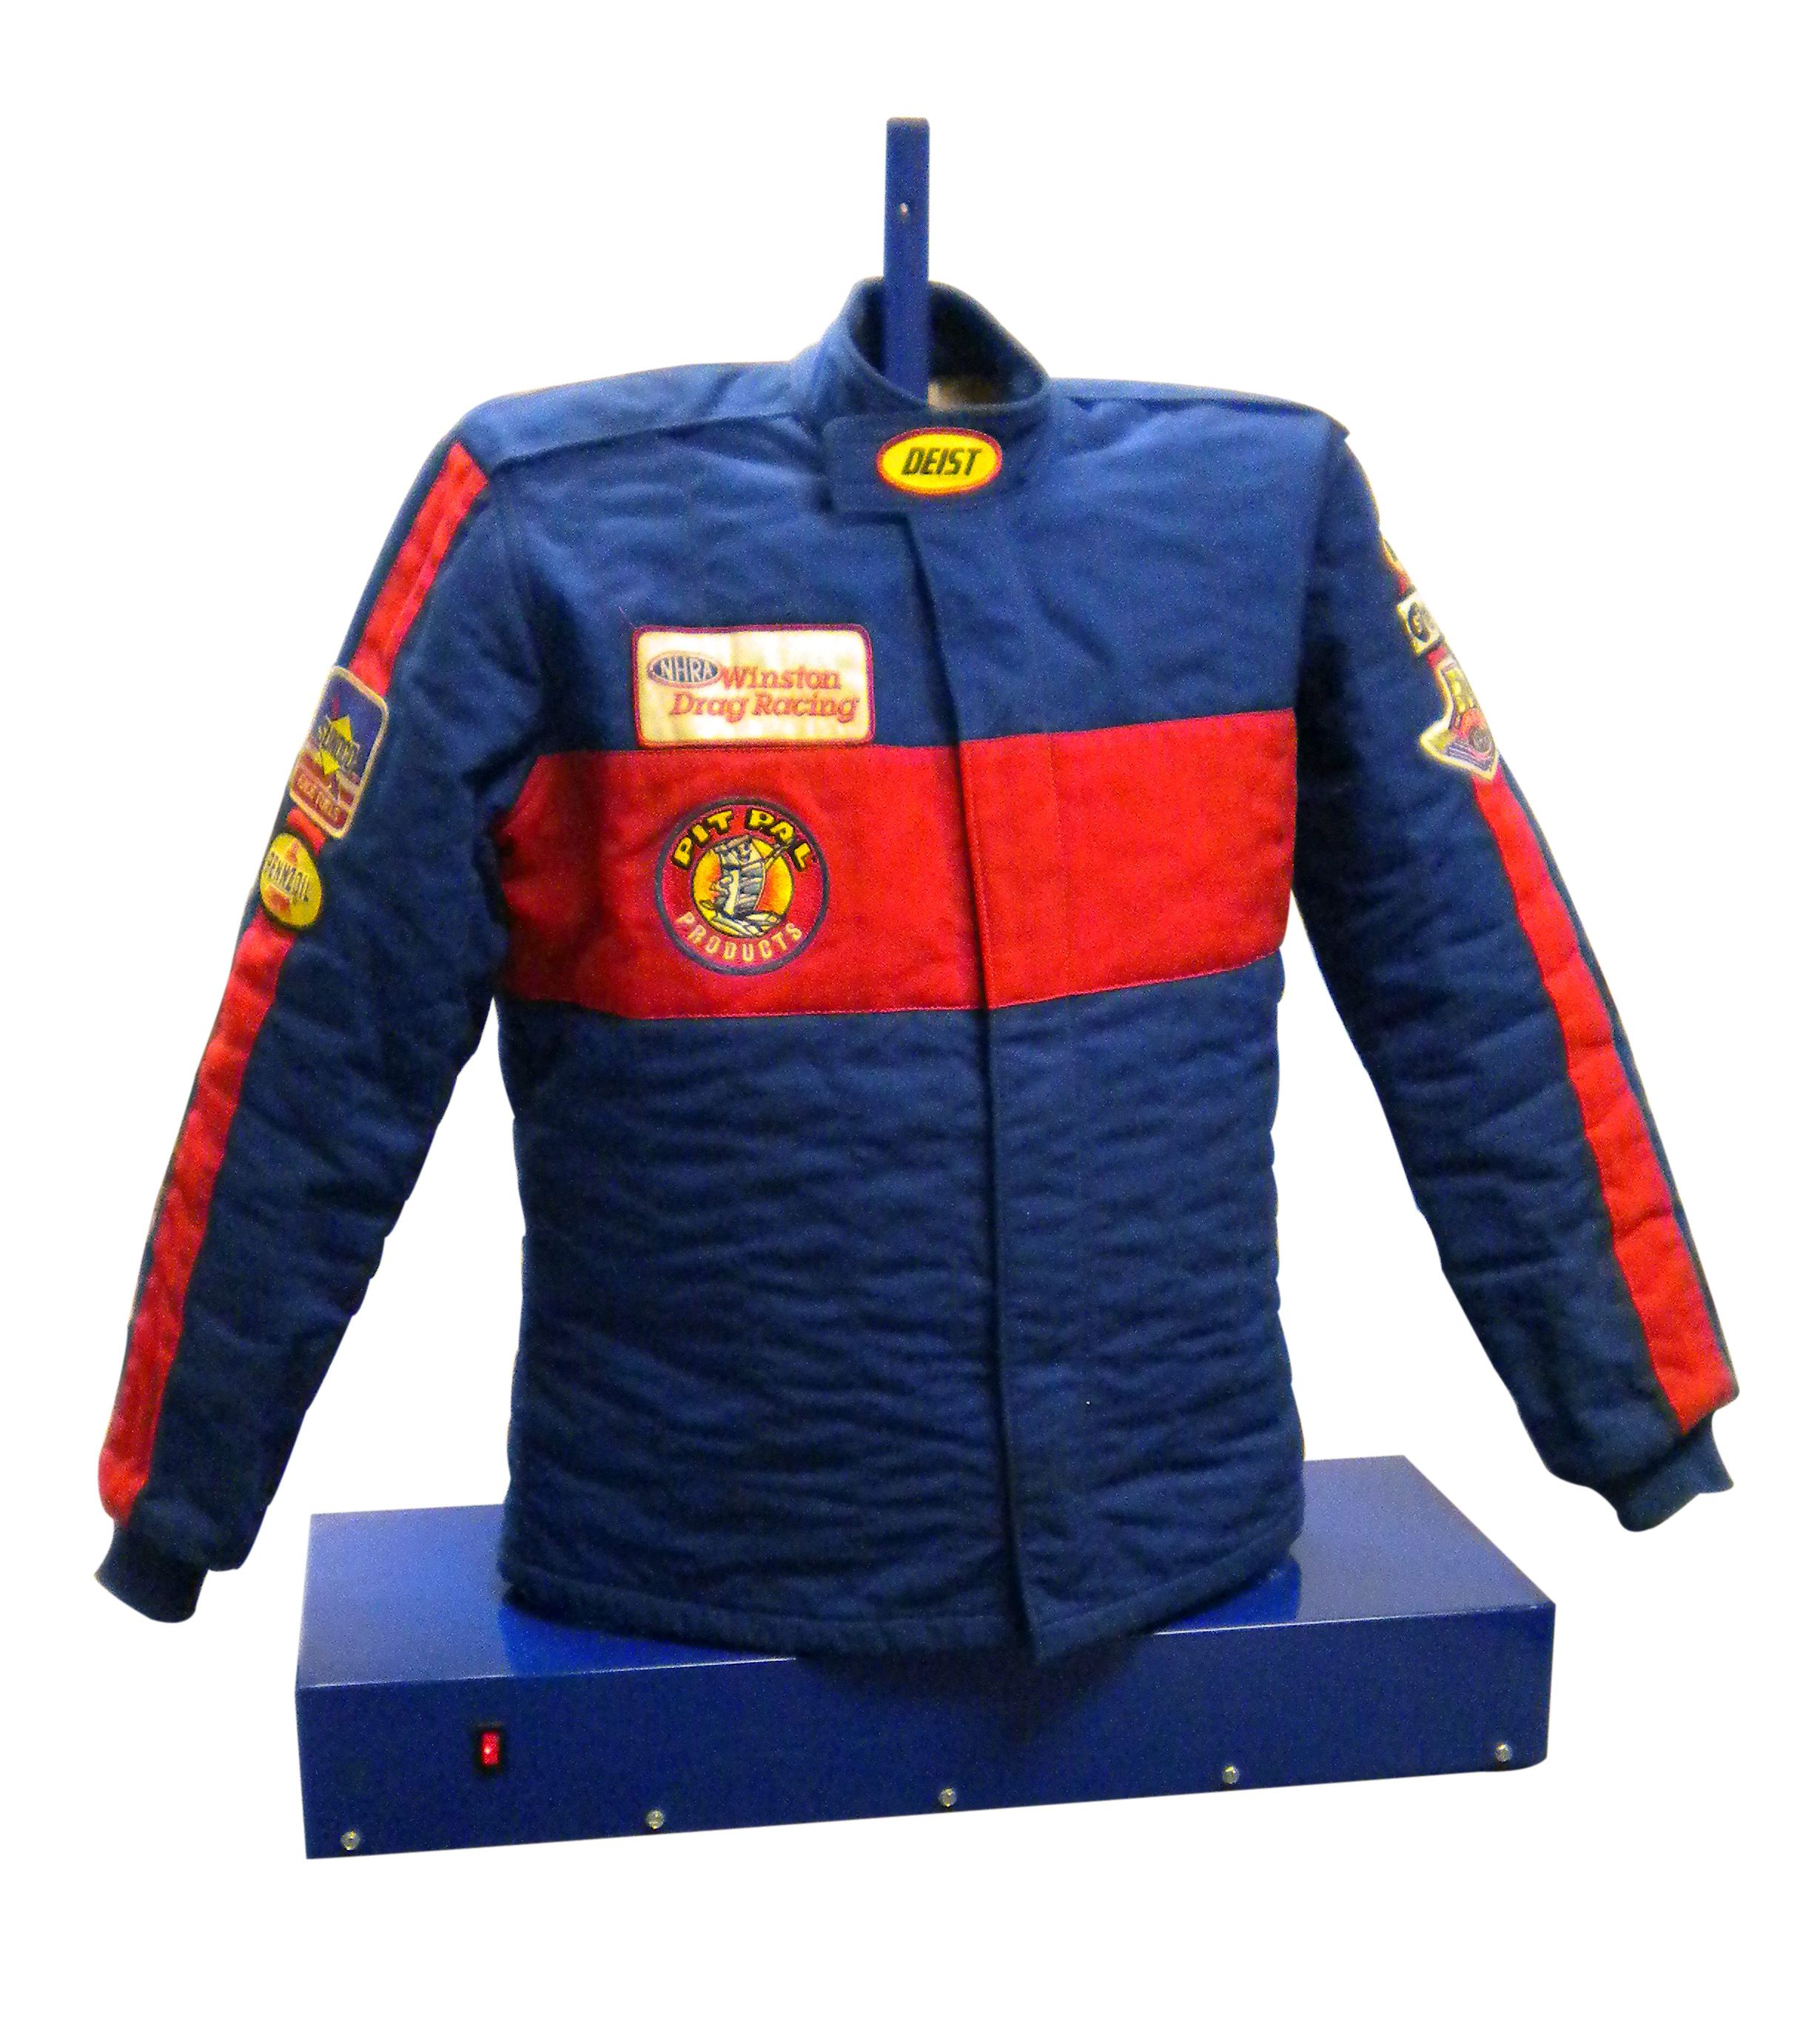 Racing Jacket Power Dryer > Save $50 Now! * Place your jacket over the shoulder supports & around base, zip it up & let the POWER DRYER take action! * Blasts air through your jacket to remove moisture * Set on stable, sturdy surface when in use * Does not contain heating element * Requires access to a power source http://www.pitpal.com/drag-racing/racing-jacket-power-dryer/